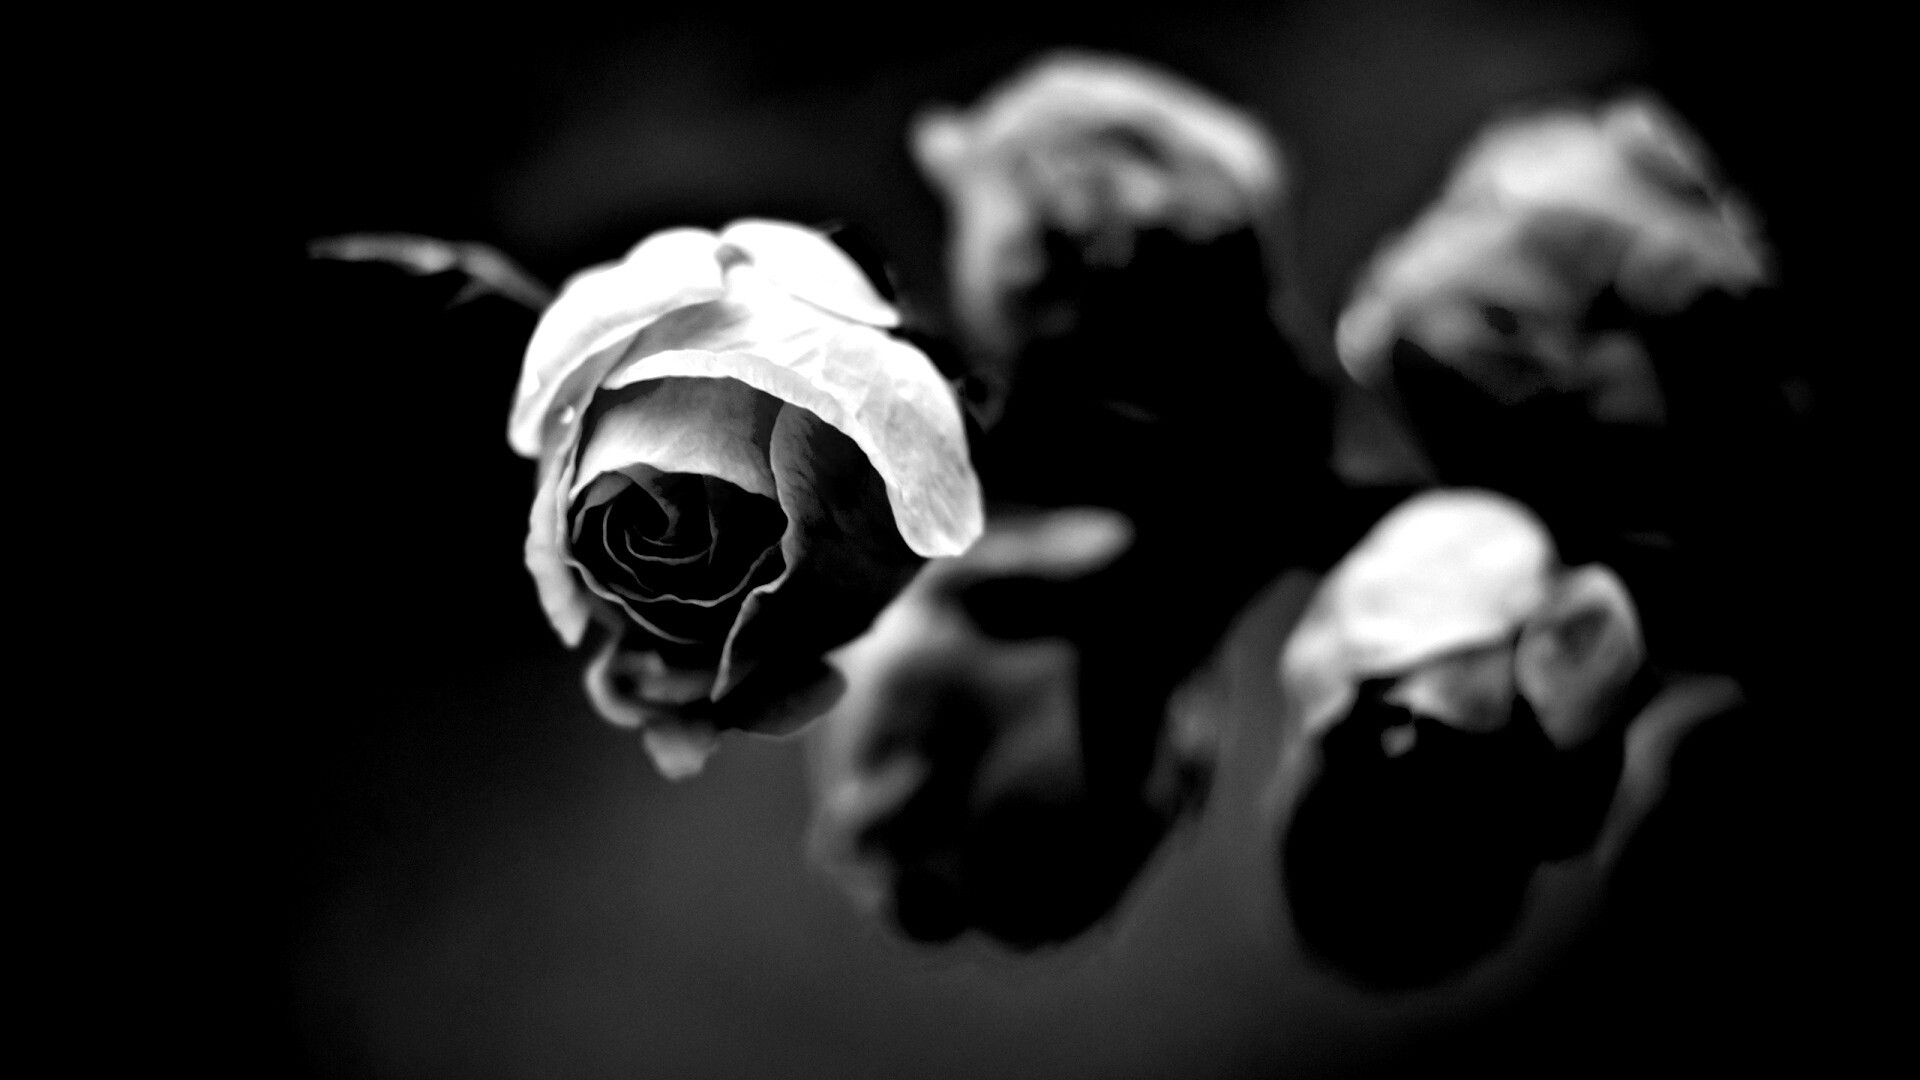 Dead Rose Free Wallpaper and Background